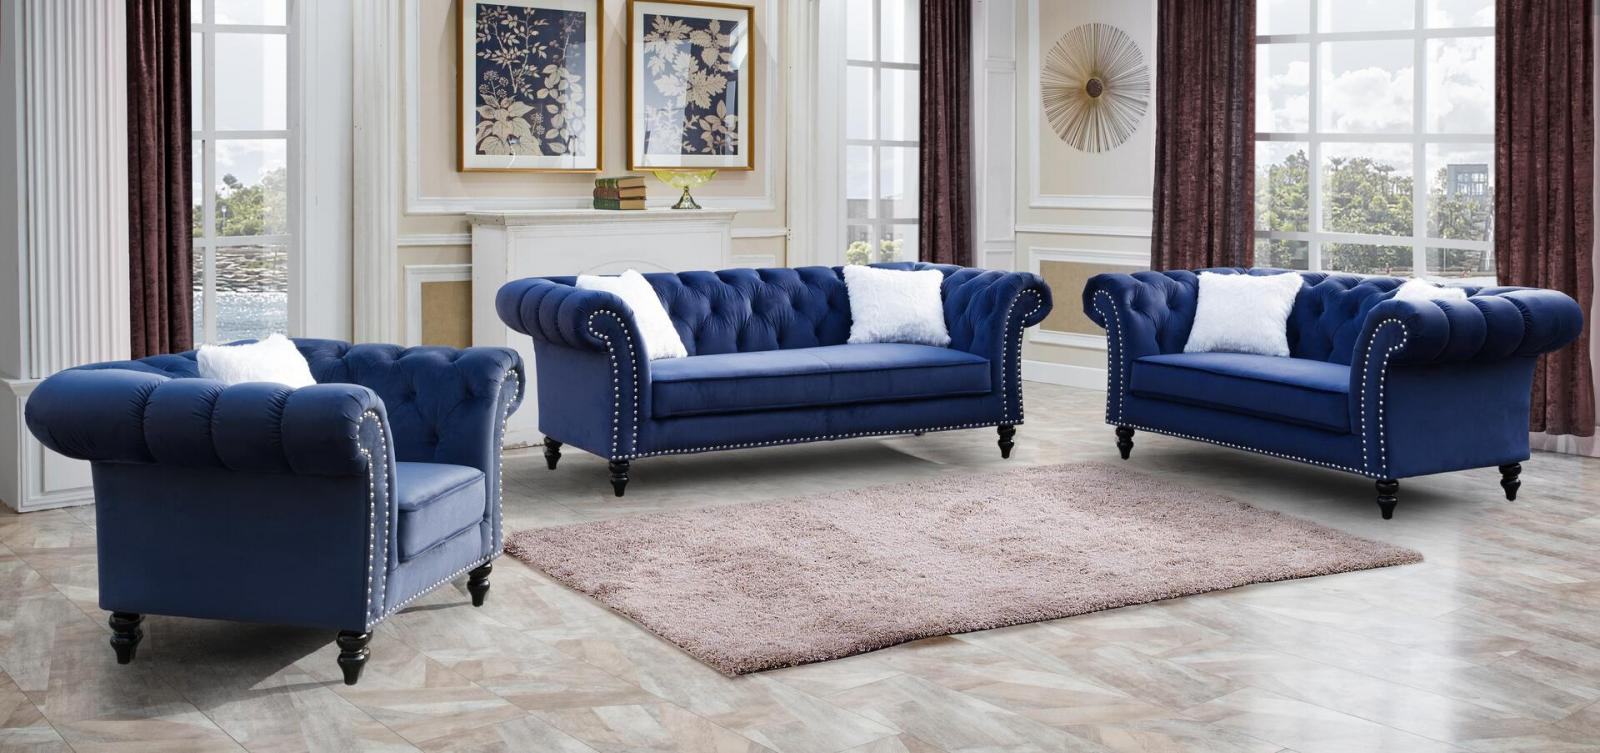 Transitional Blue Fabric Sofa Loveseat and Chair Set 3 pcs Cosmos Furniture Gaby-Set-3